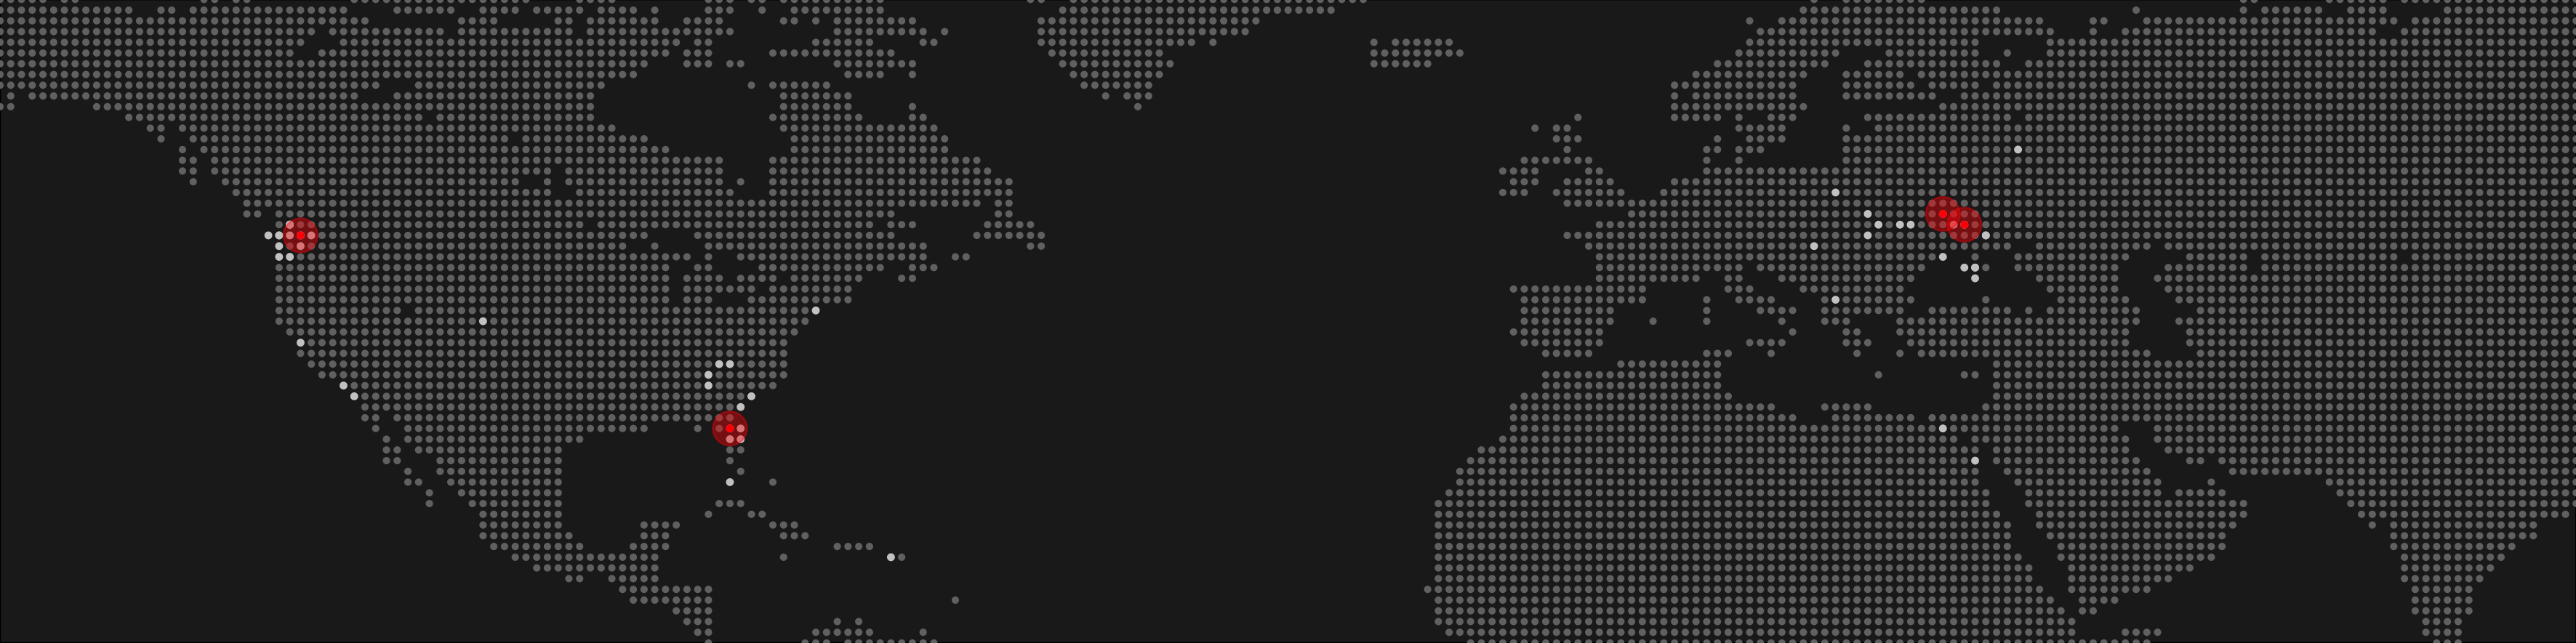 Create World Pixel Maps in R https://d33wubrfki0l68.cloudfront.net/4358d00a8a7d03a59f3ea32434aeadf5ff05f6e4/e71ca/posts/pixel-maps/header.png